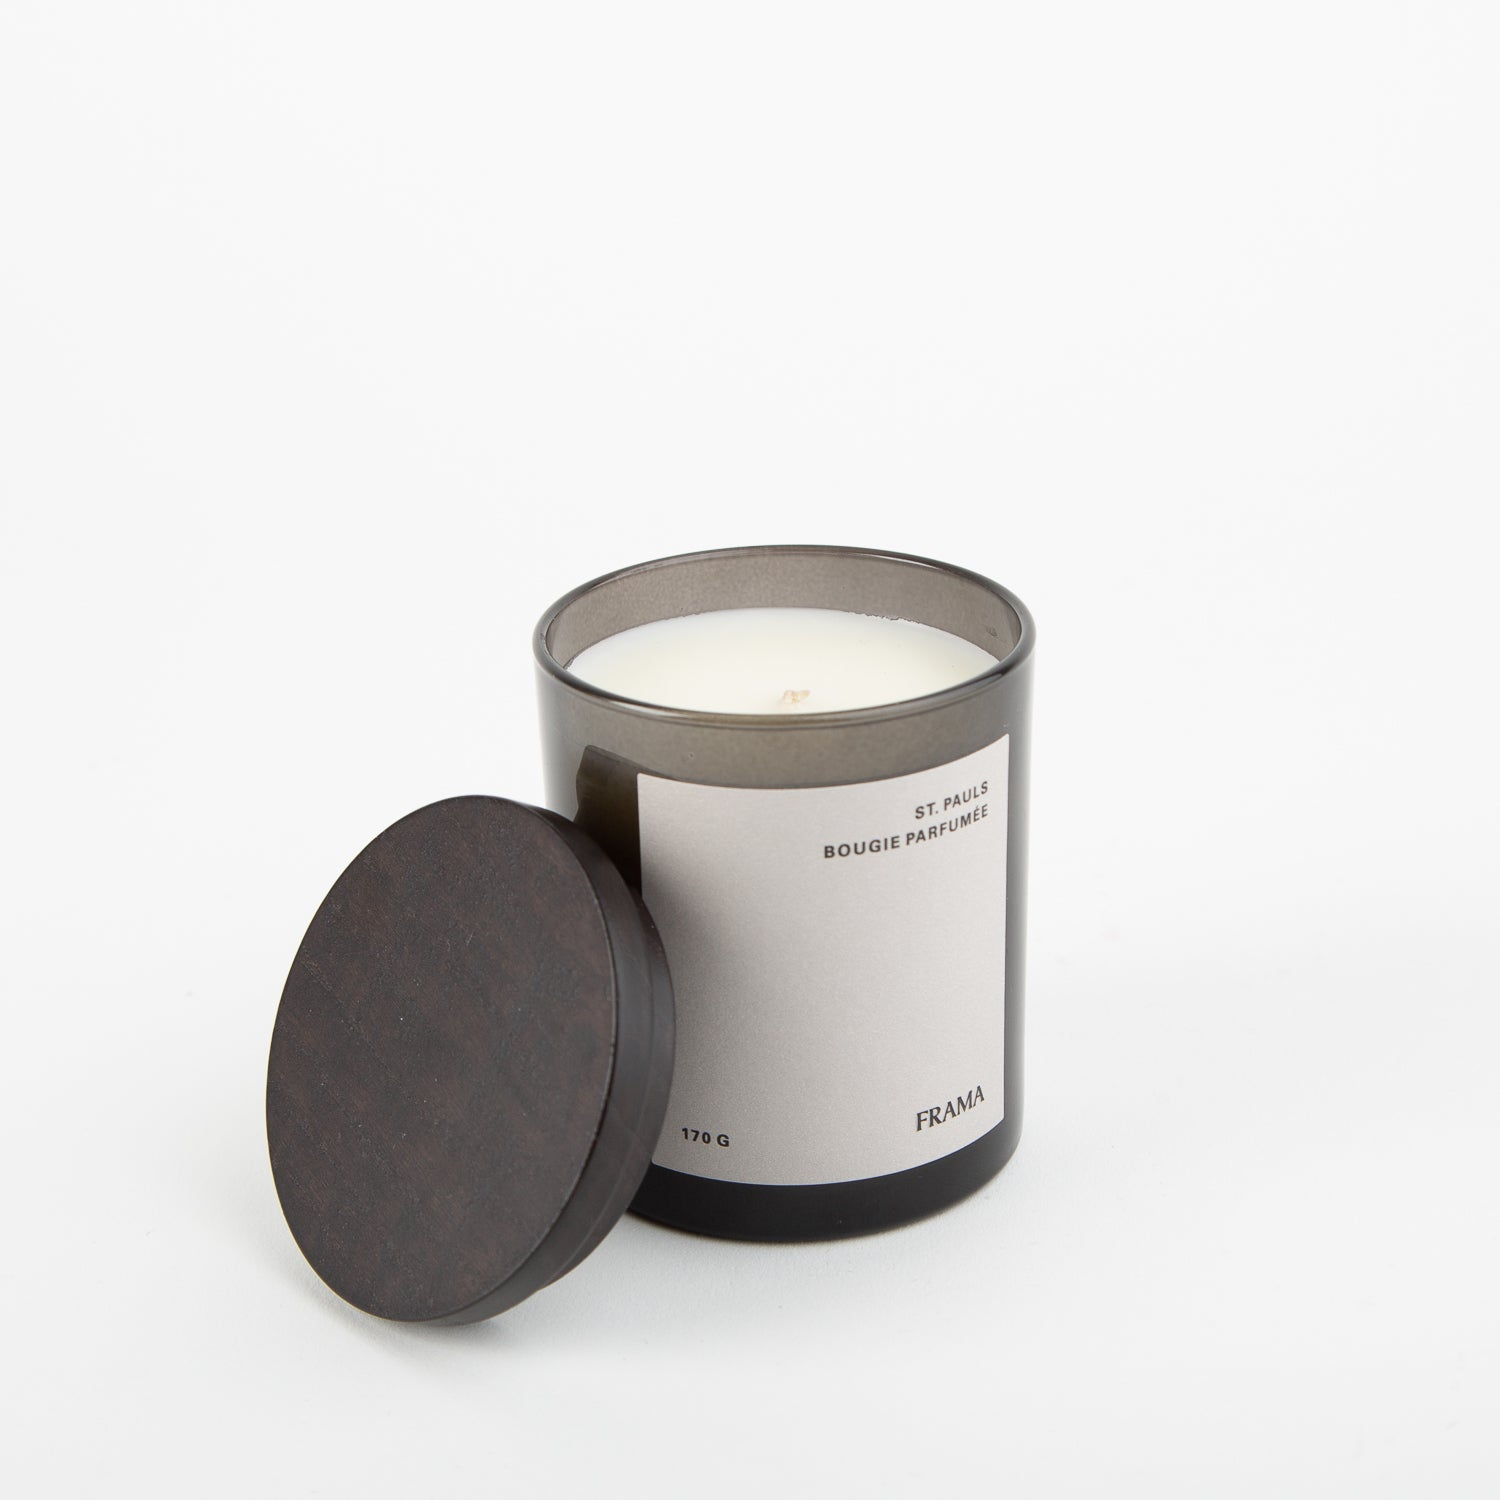 St. Pauls Scented Candle